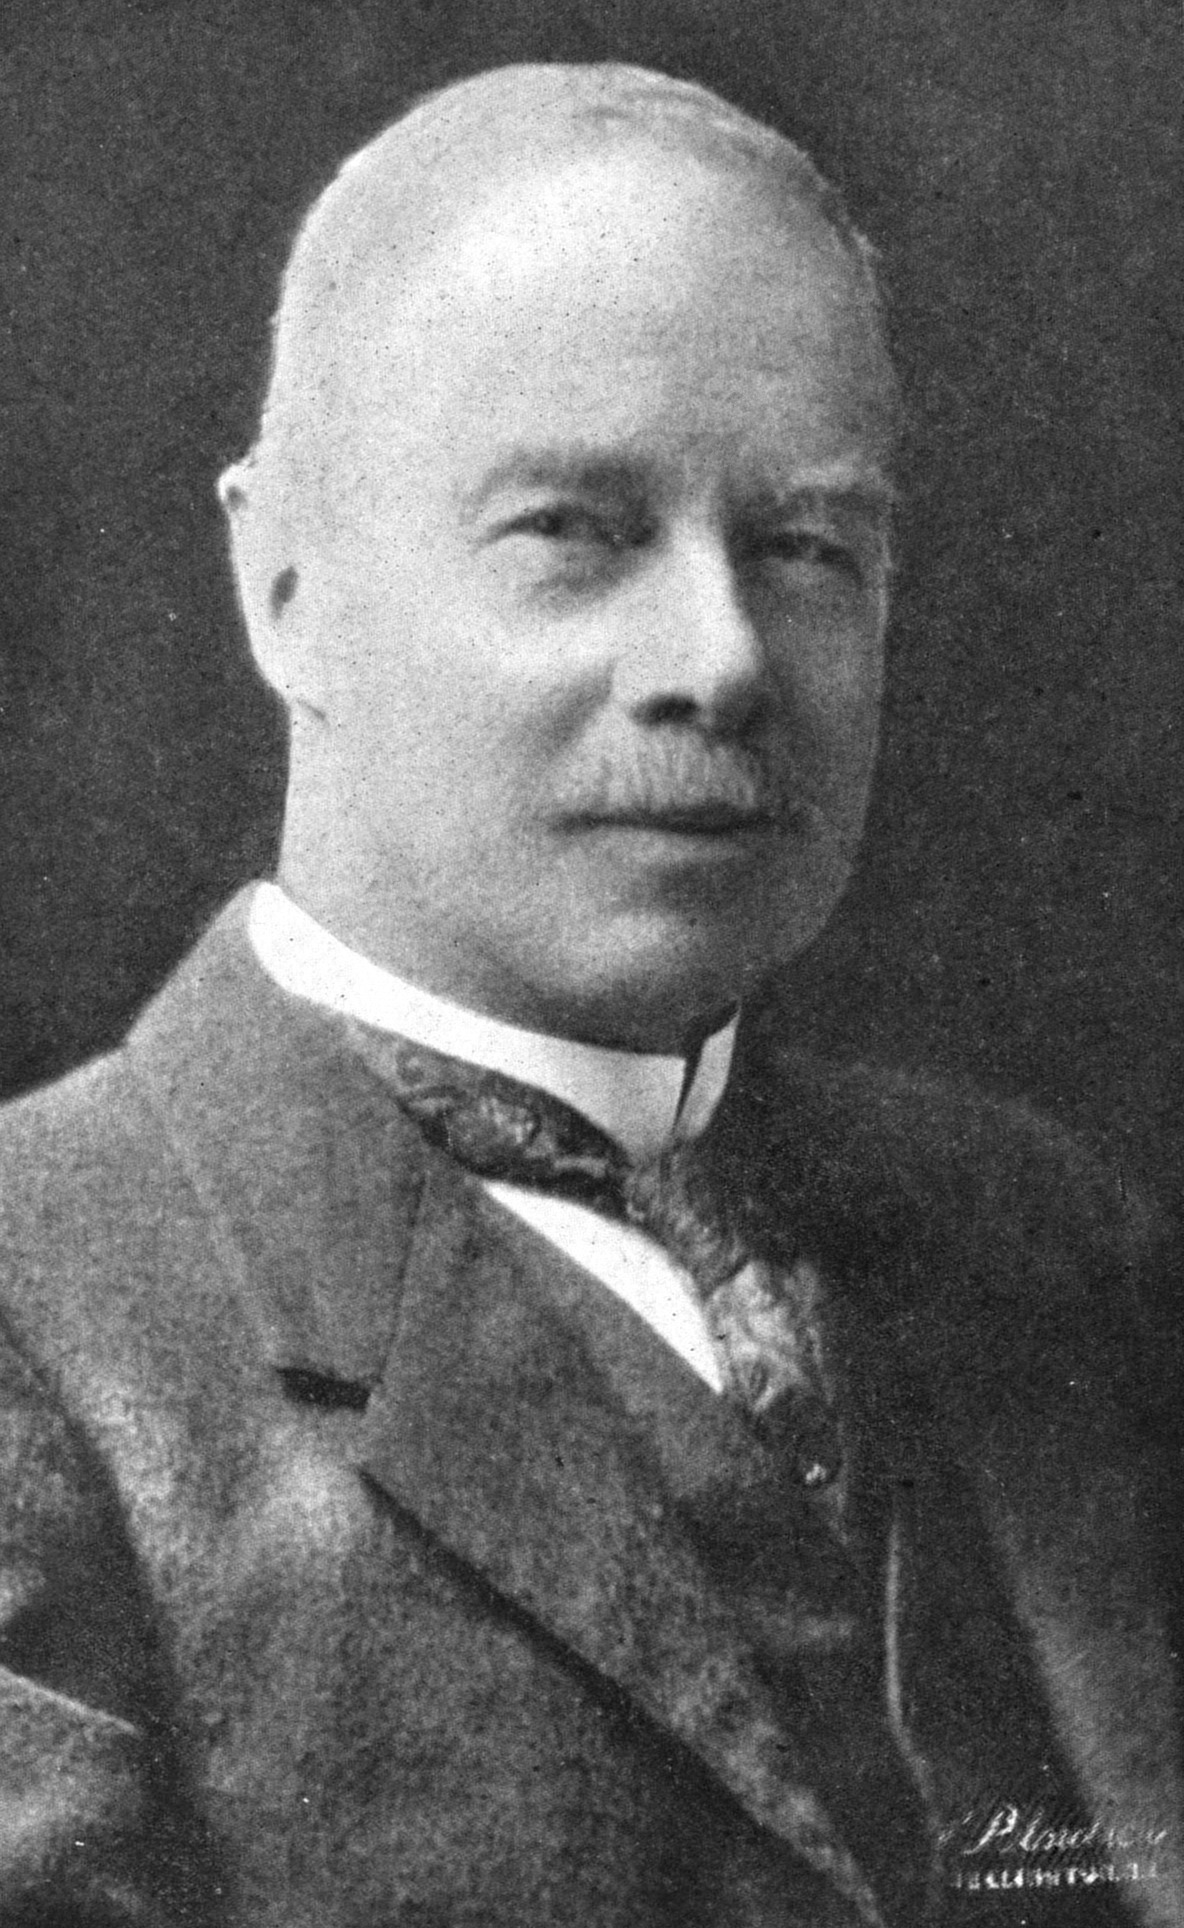 A black and white photo of a bald white man with a mustache